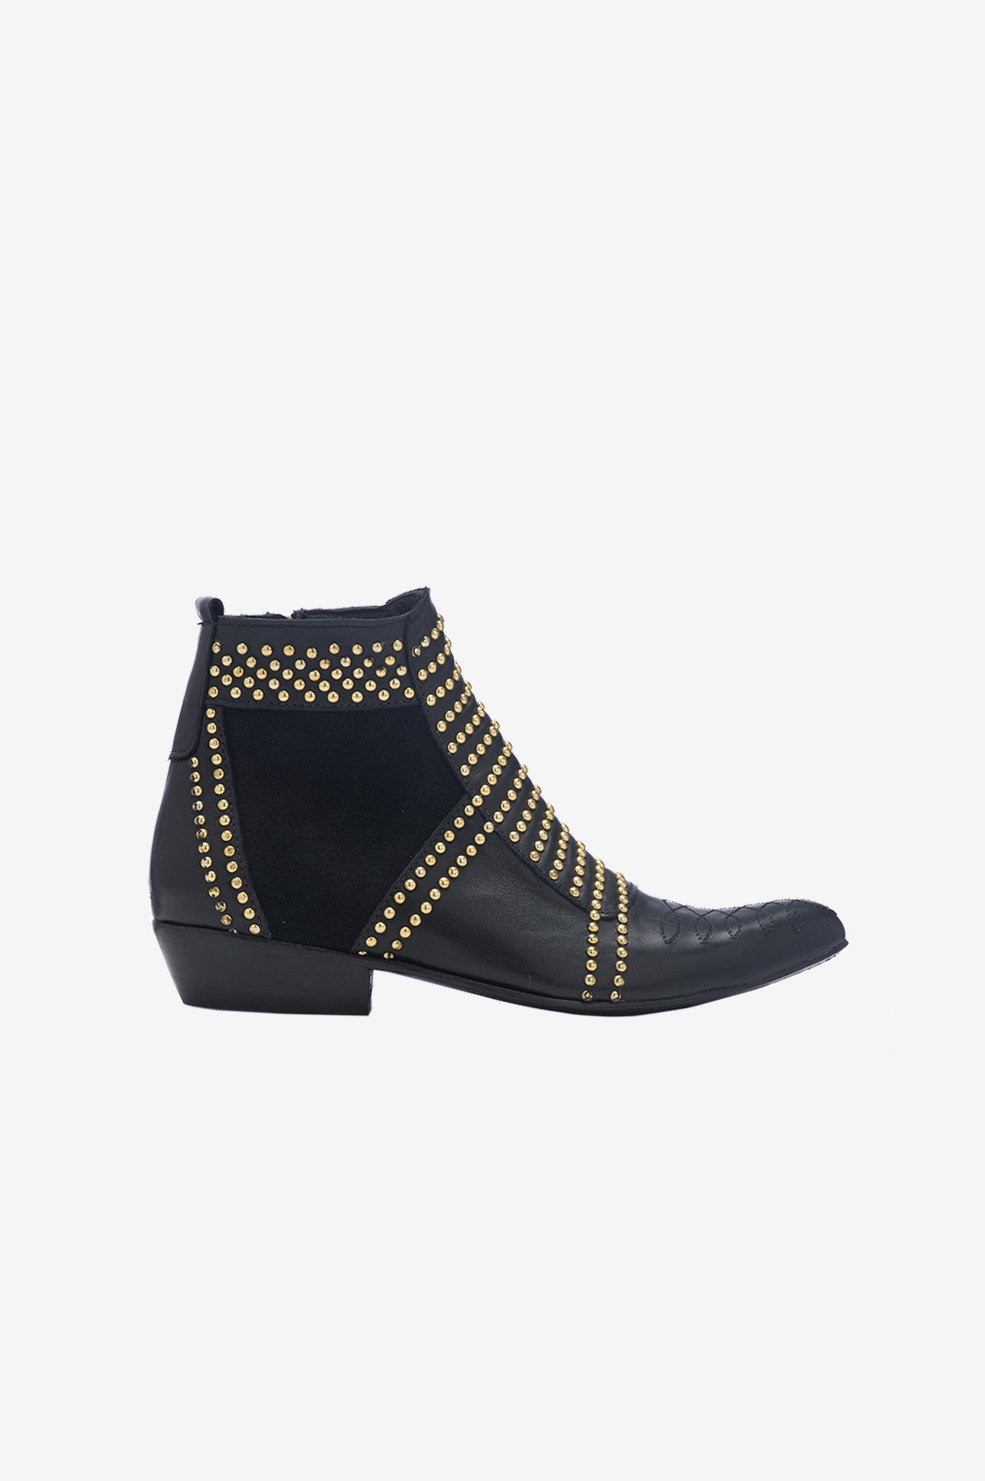 6147a6e7cc609 ANINE BING Charlie Boots with Gold Studs